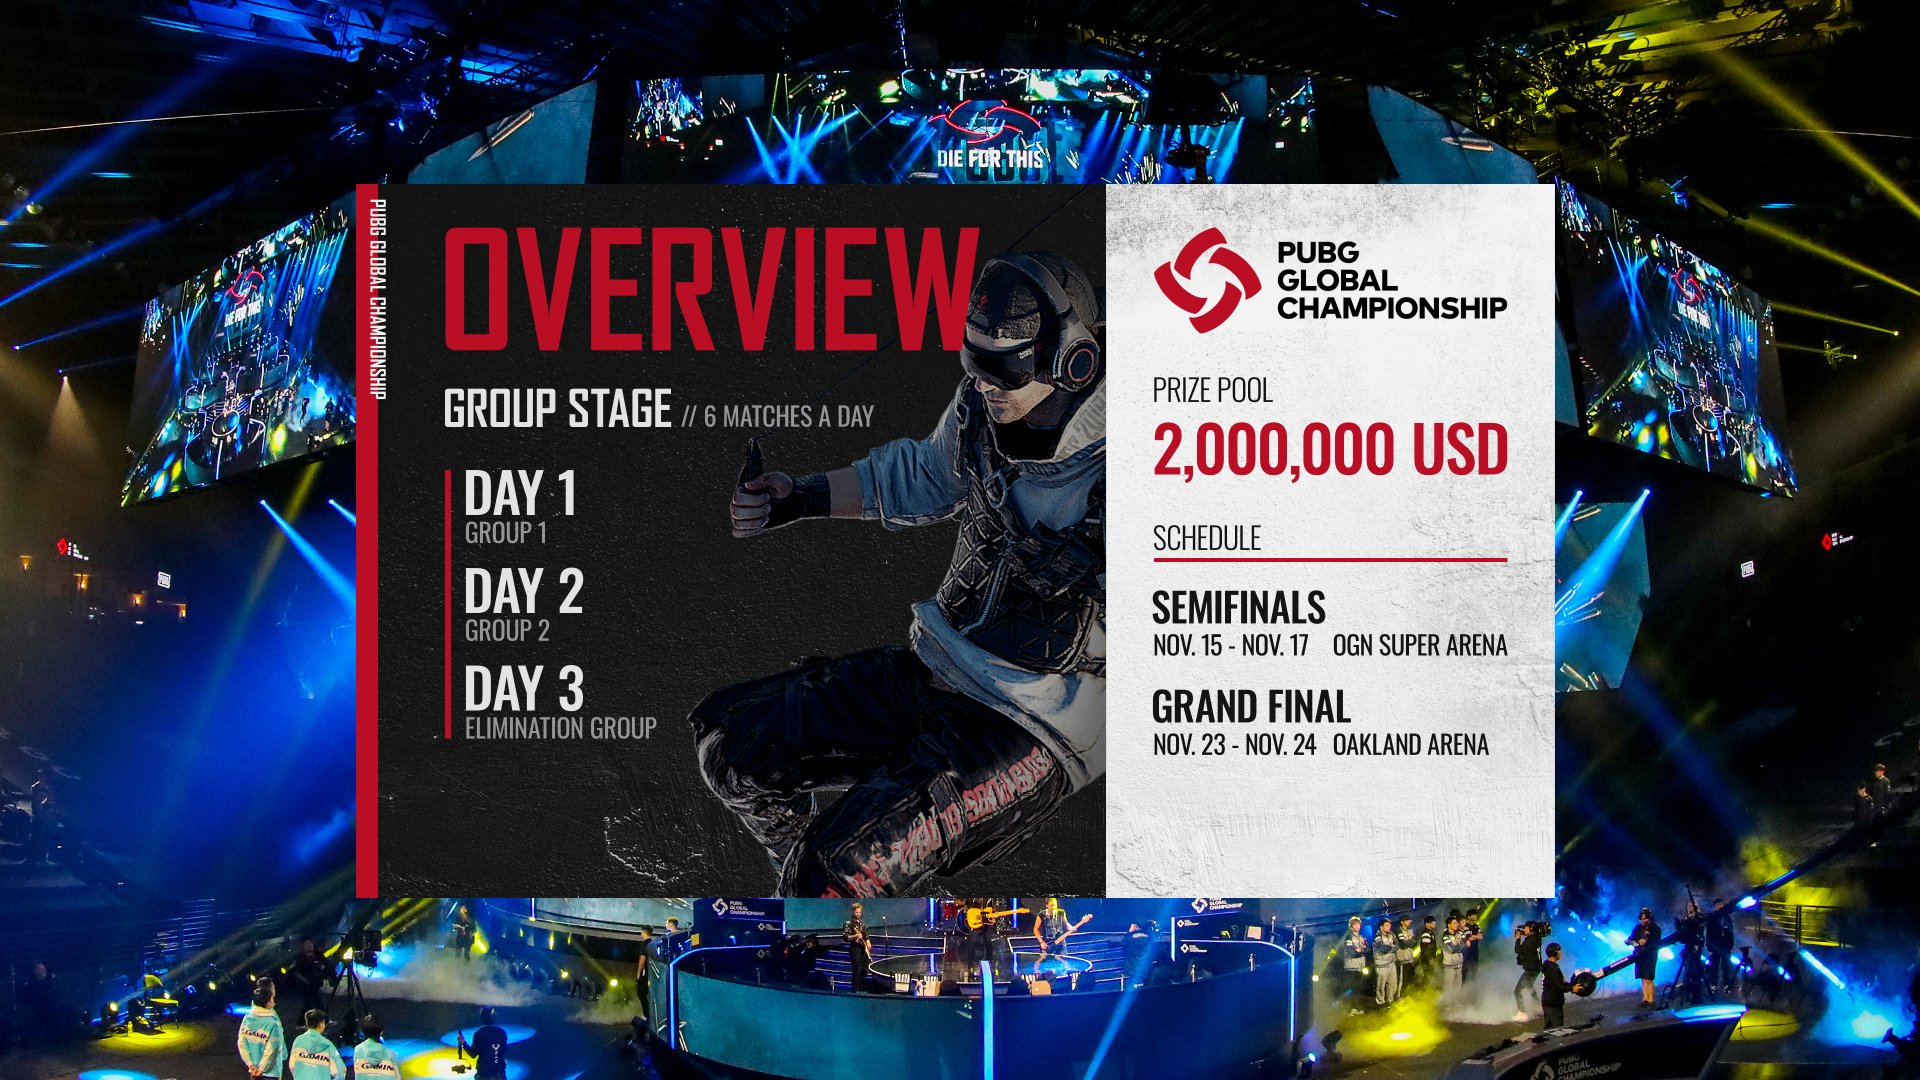 11_Overview_01_Group stage